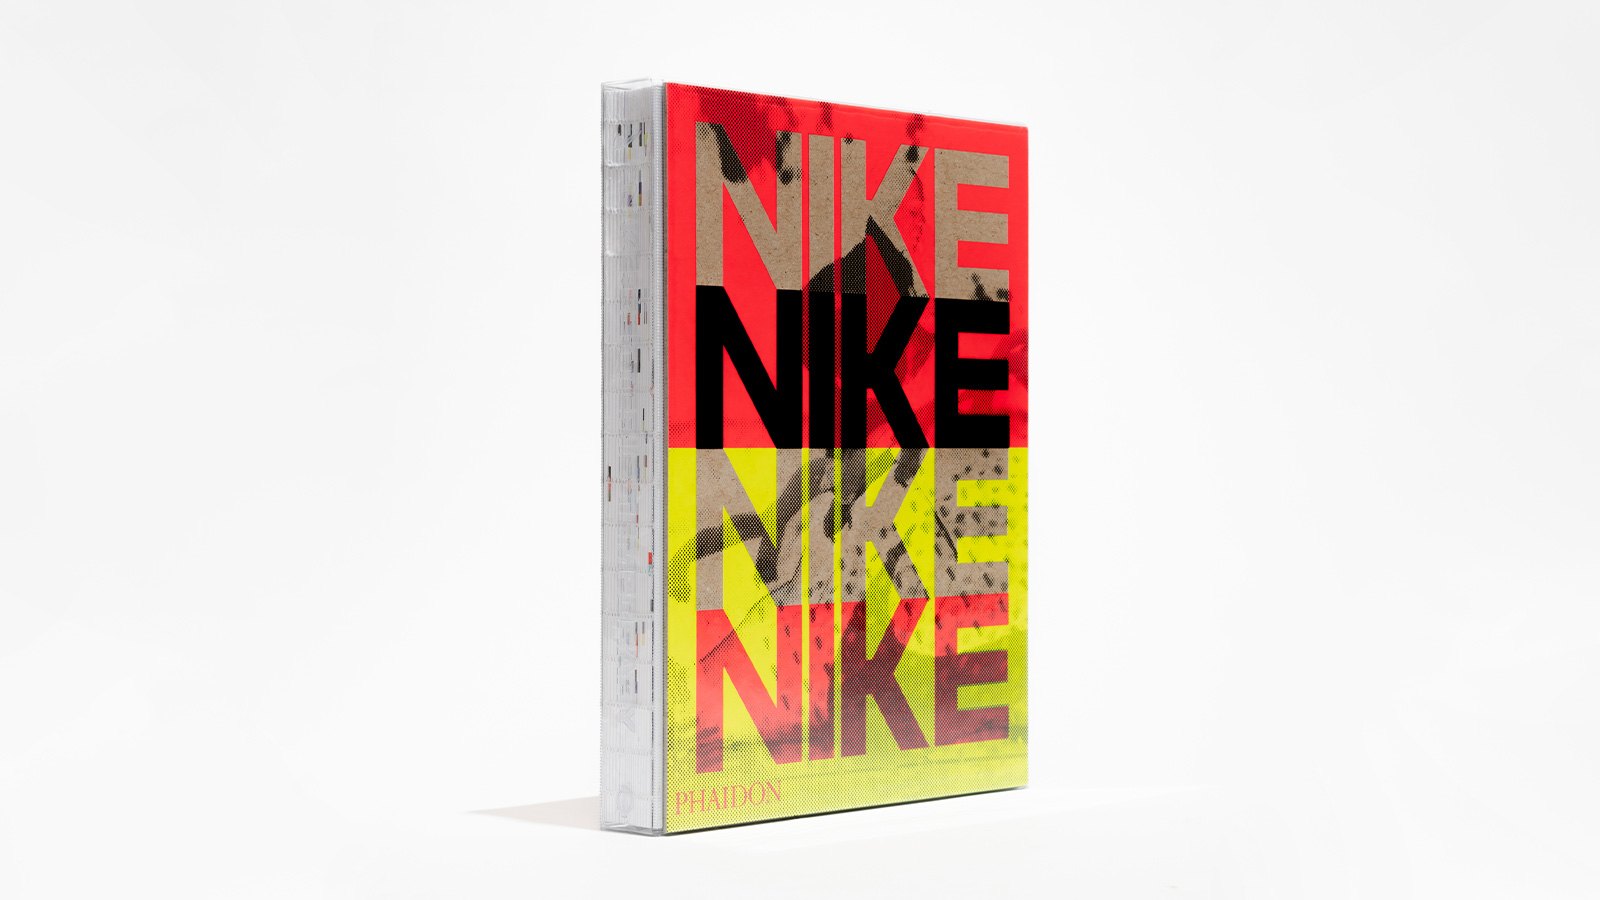 'Nike: Better is Temporary' by Sam Grawe